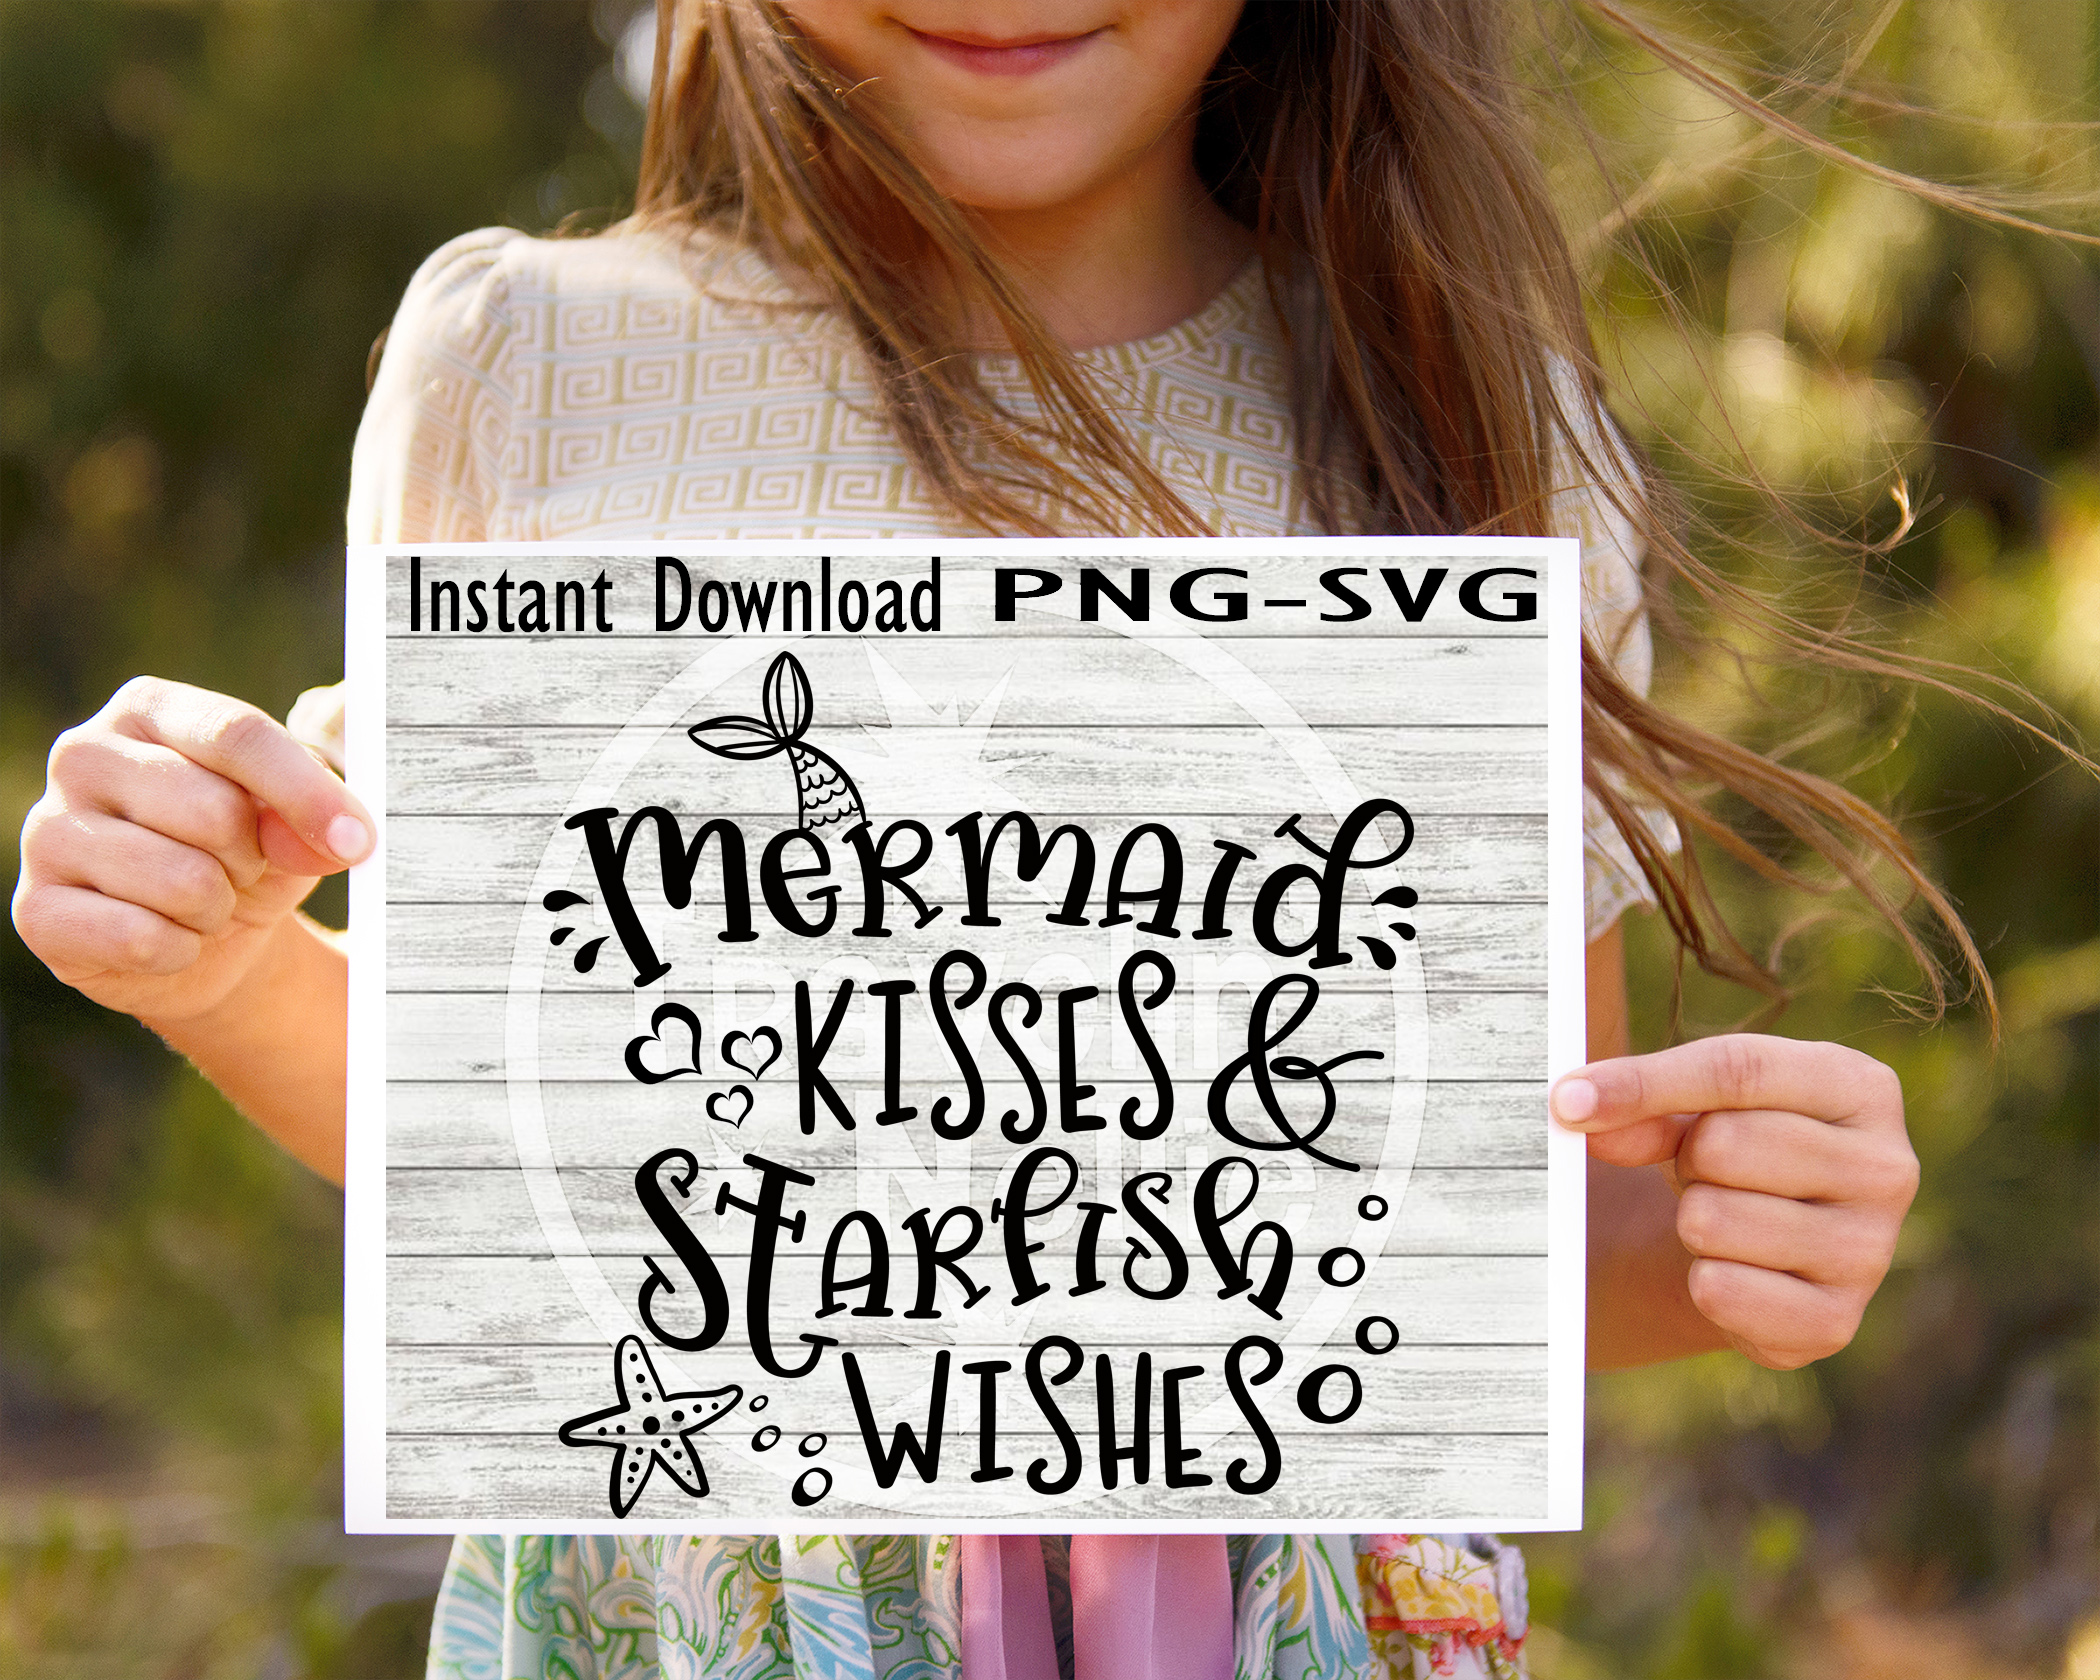 Mermaid Kisses Starfish Wishes SVG PNG Cricut Cameo Silhouette Brother Scan & Cut Crafters Cutting Files for Vinyl Cutting Sign Making example image 1